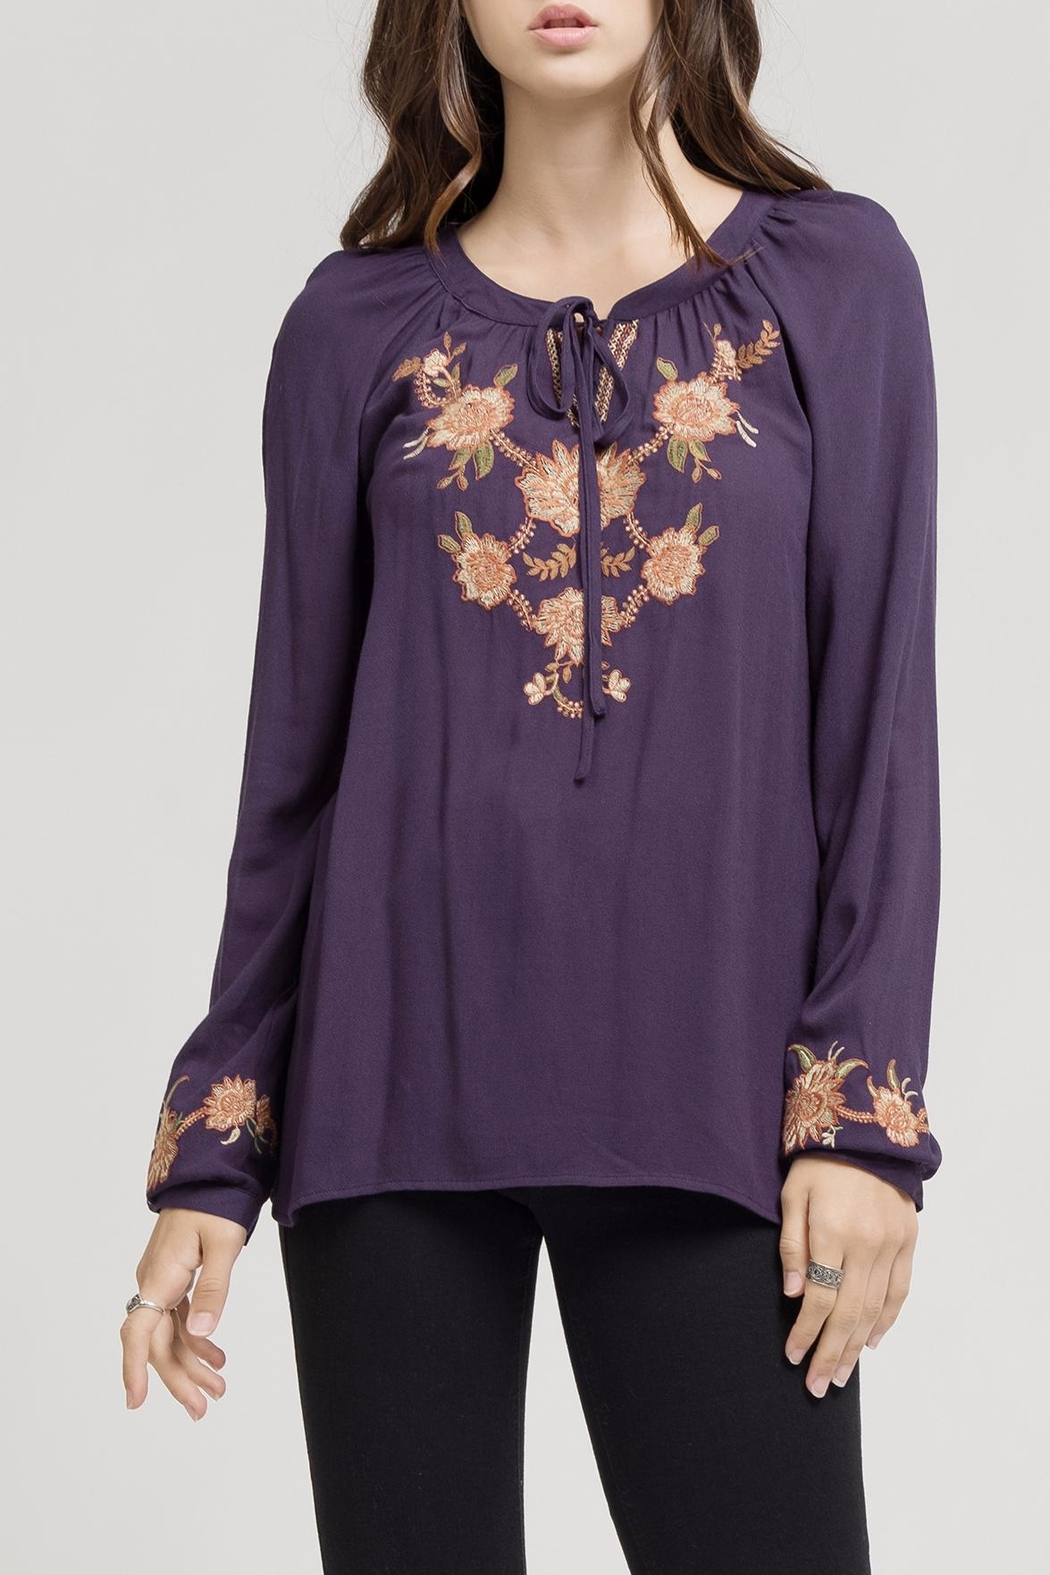 Blu Pepper Embroidered Tie Blouse - Main Image